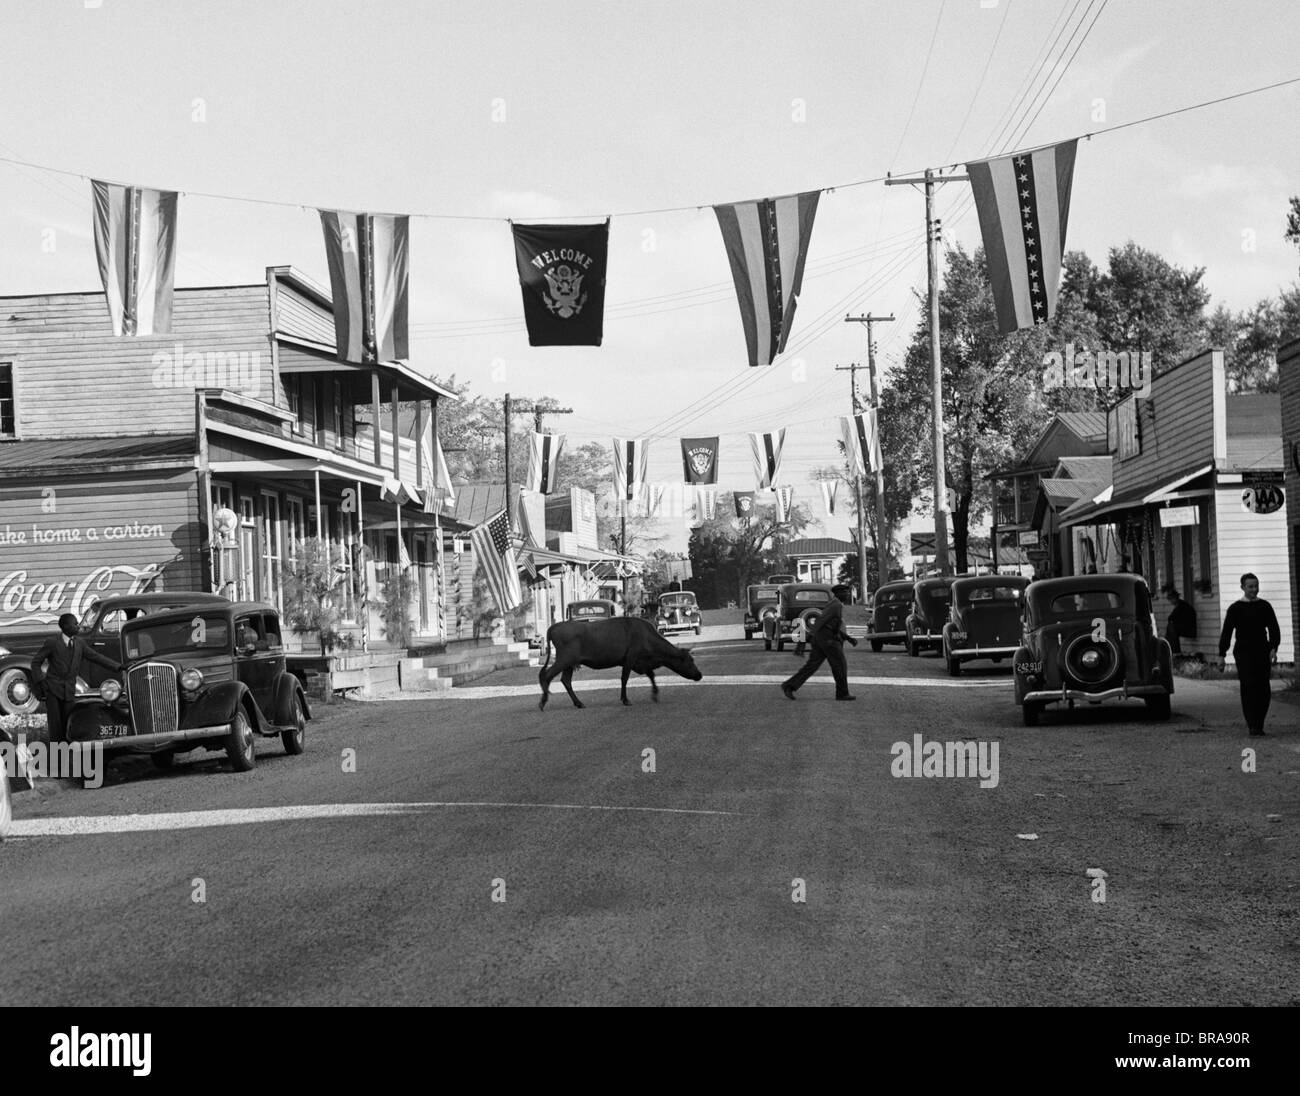 1930s MAIN STREET SMALL TOWN WITH FLAGS FLYING & COW CROSSING STREET - Stock Image